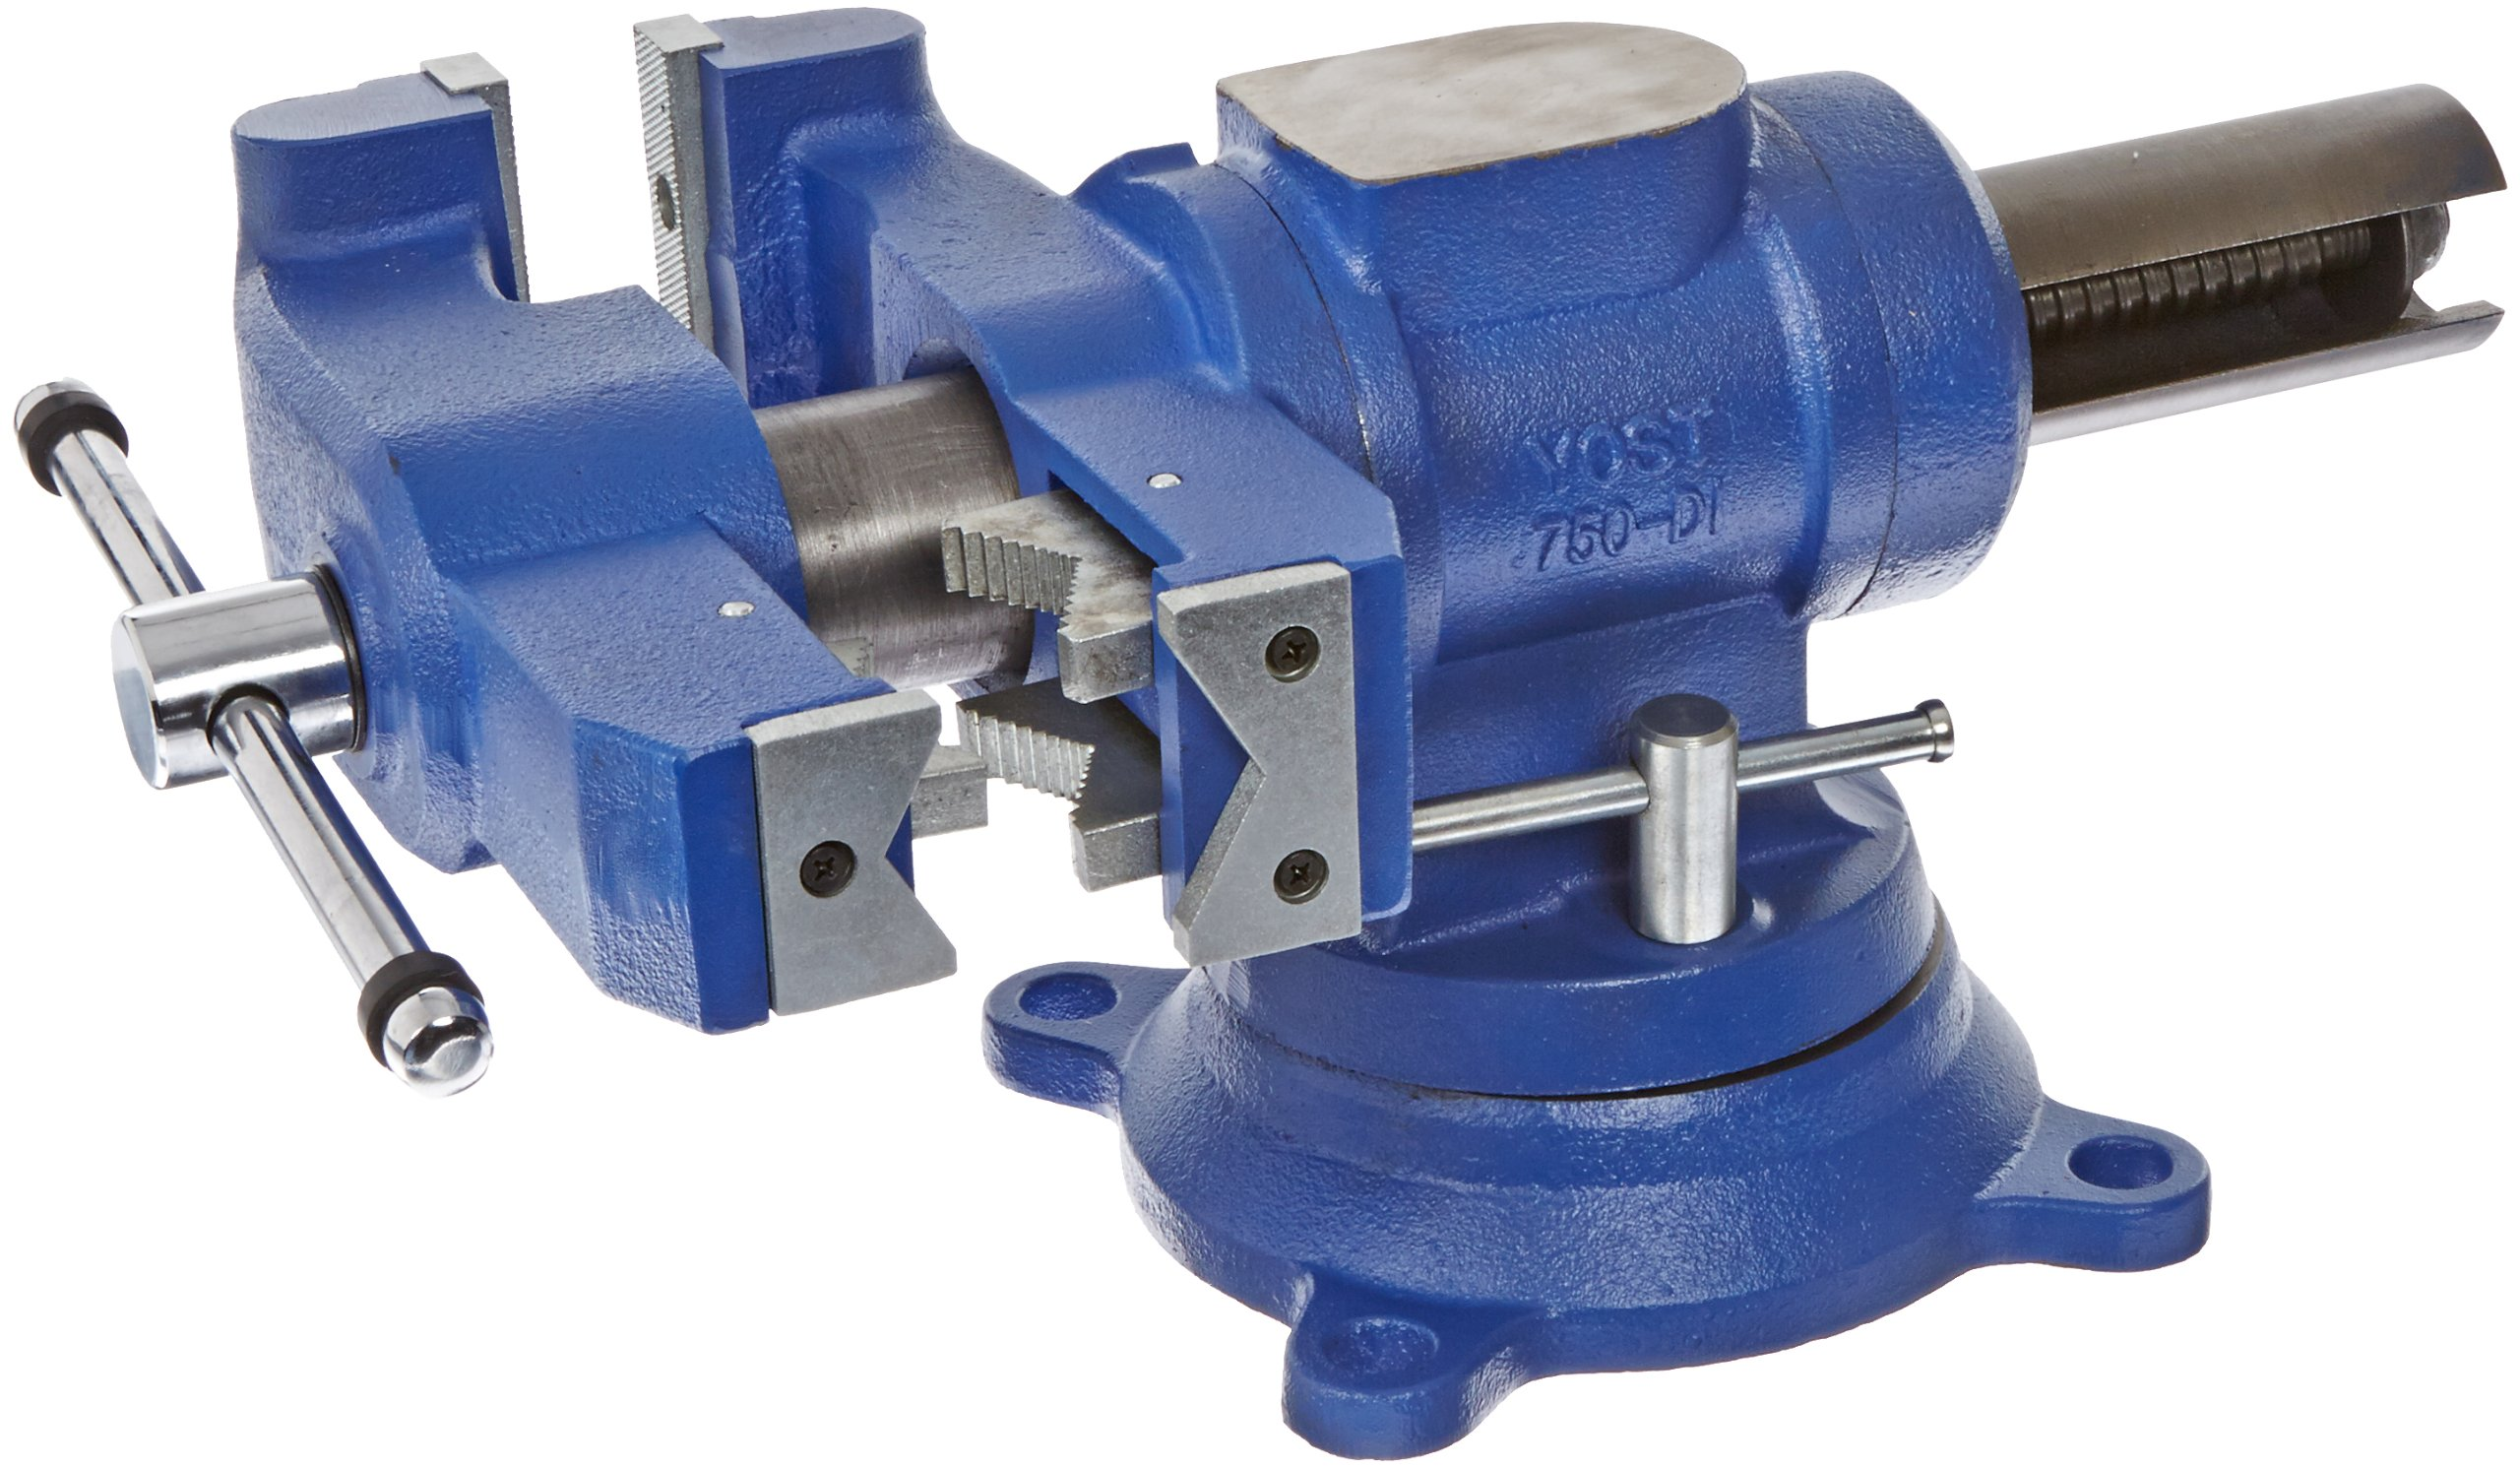 Yost Vises 750-DI 5'' Heavy-Duty Multi-Jaw Rotating Combination Pipe and Bench Vise with 360-Degree Swivel Base and Head by Yost Tools (Image #1)